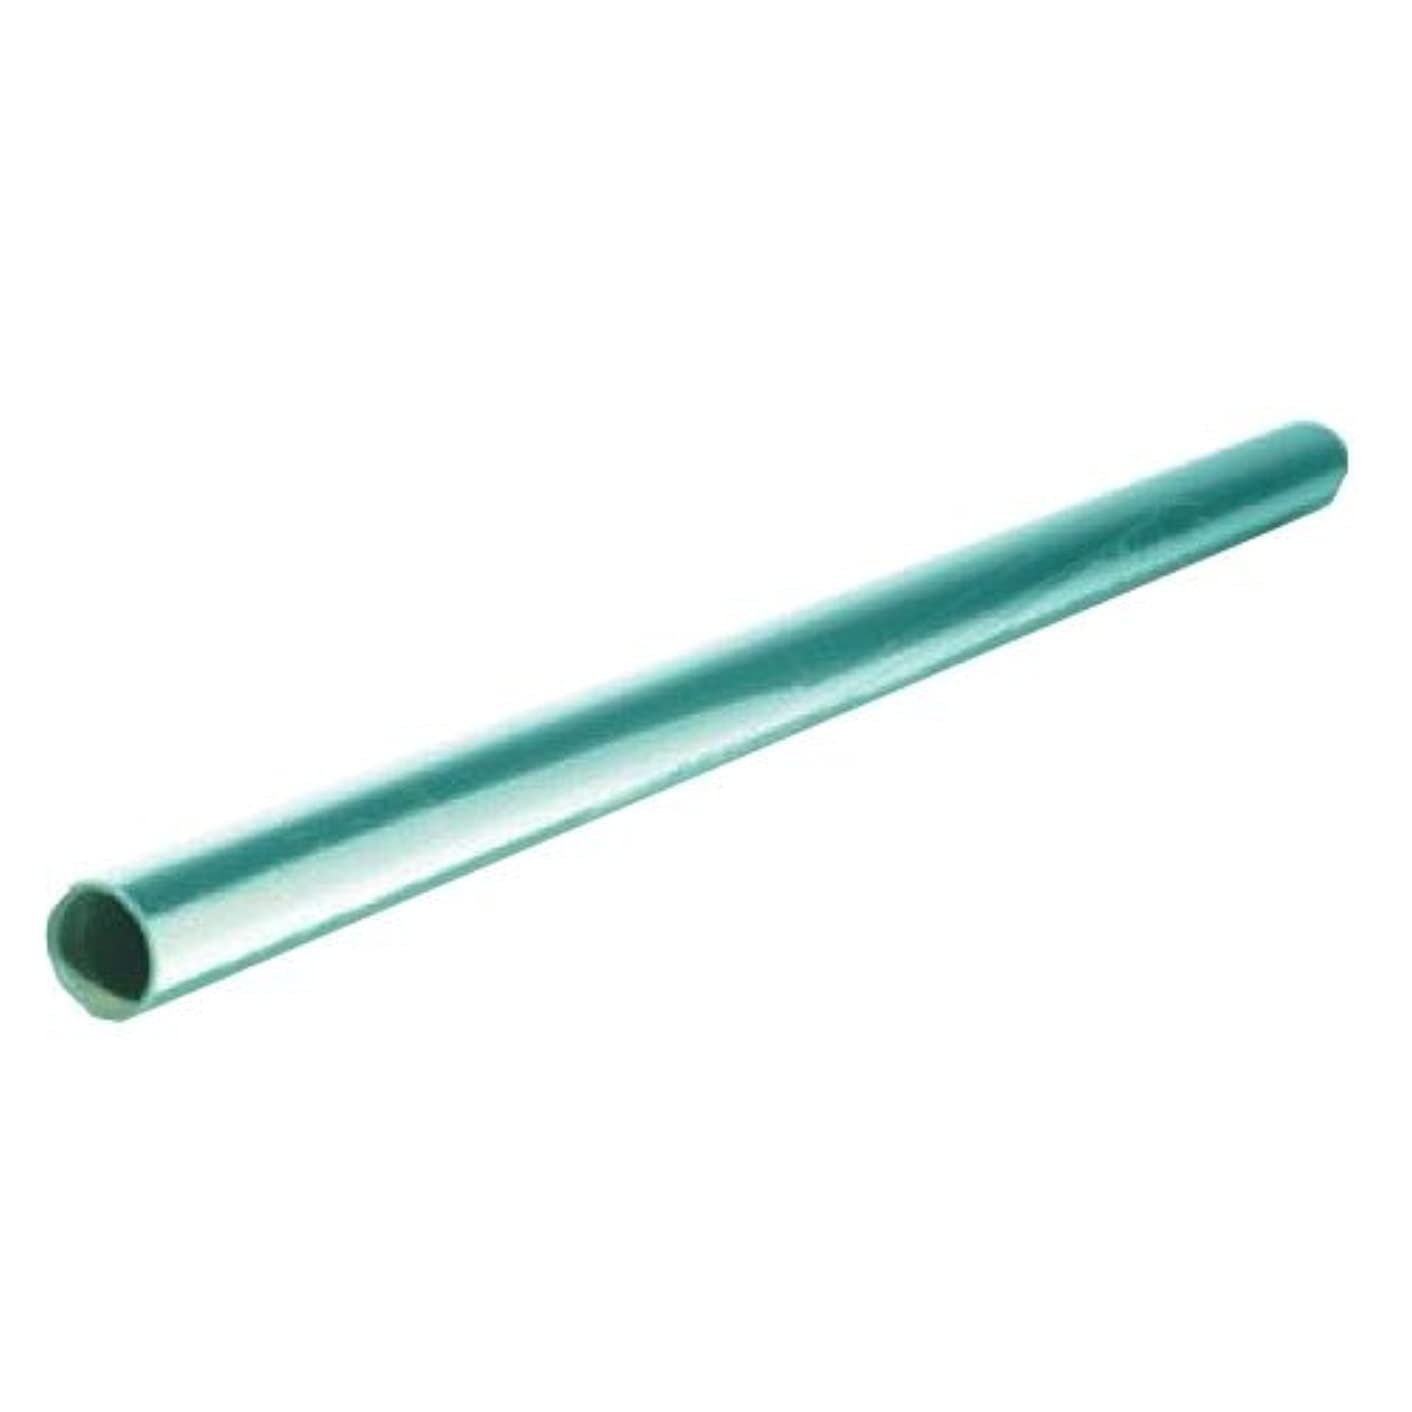 30 in. x 50 ft Light Blue Cellophane Gift Wrap high quality roll By Crown